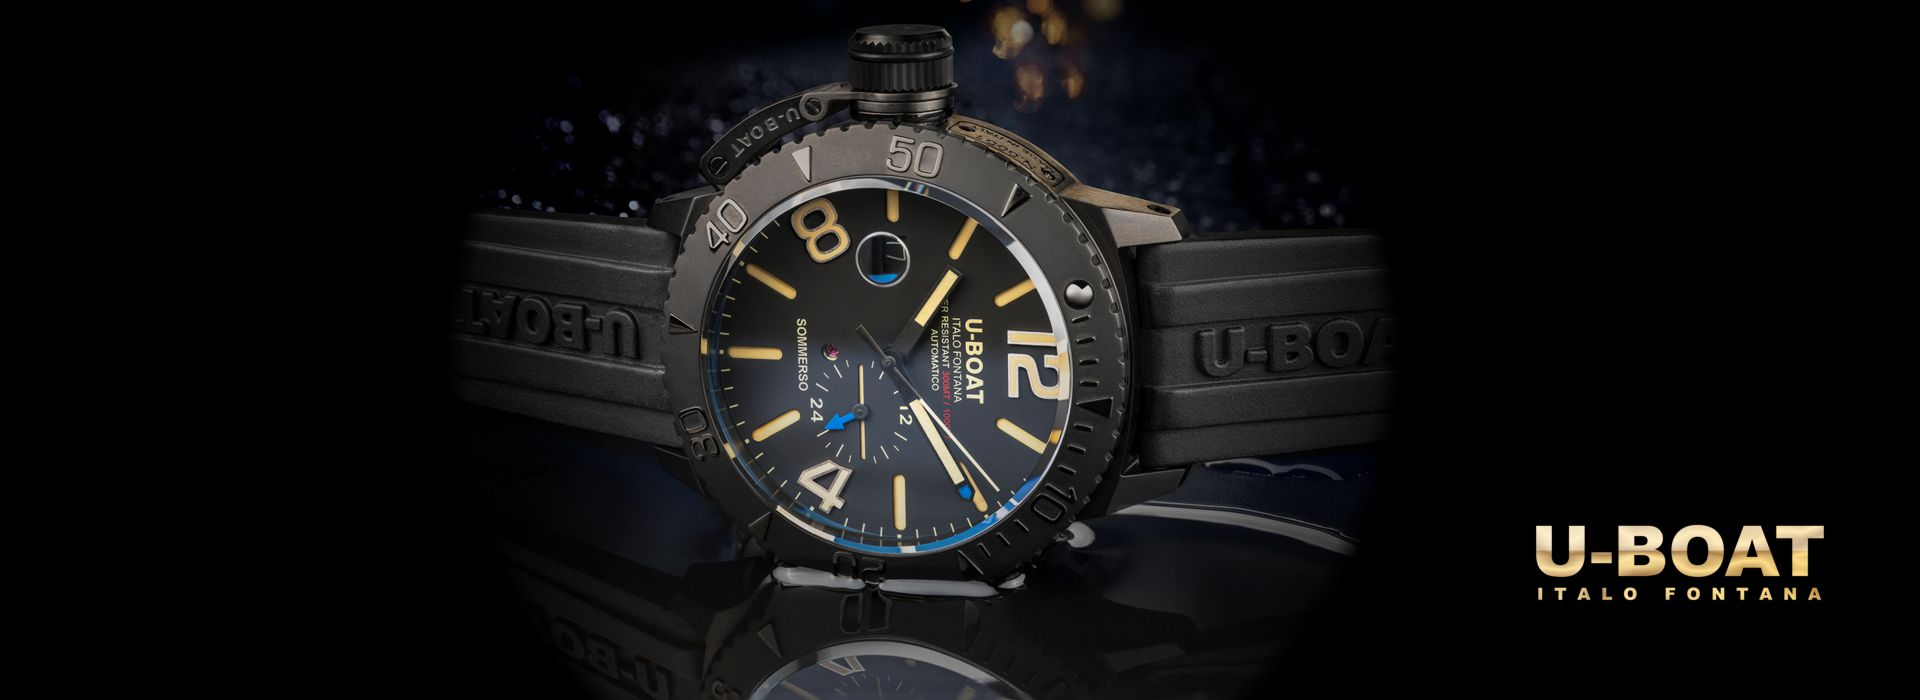 U-BOAT_SOMMERSO_PRO_WATCHES_DYSTRYBUCJA